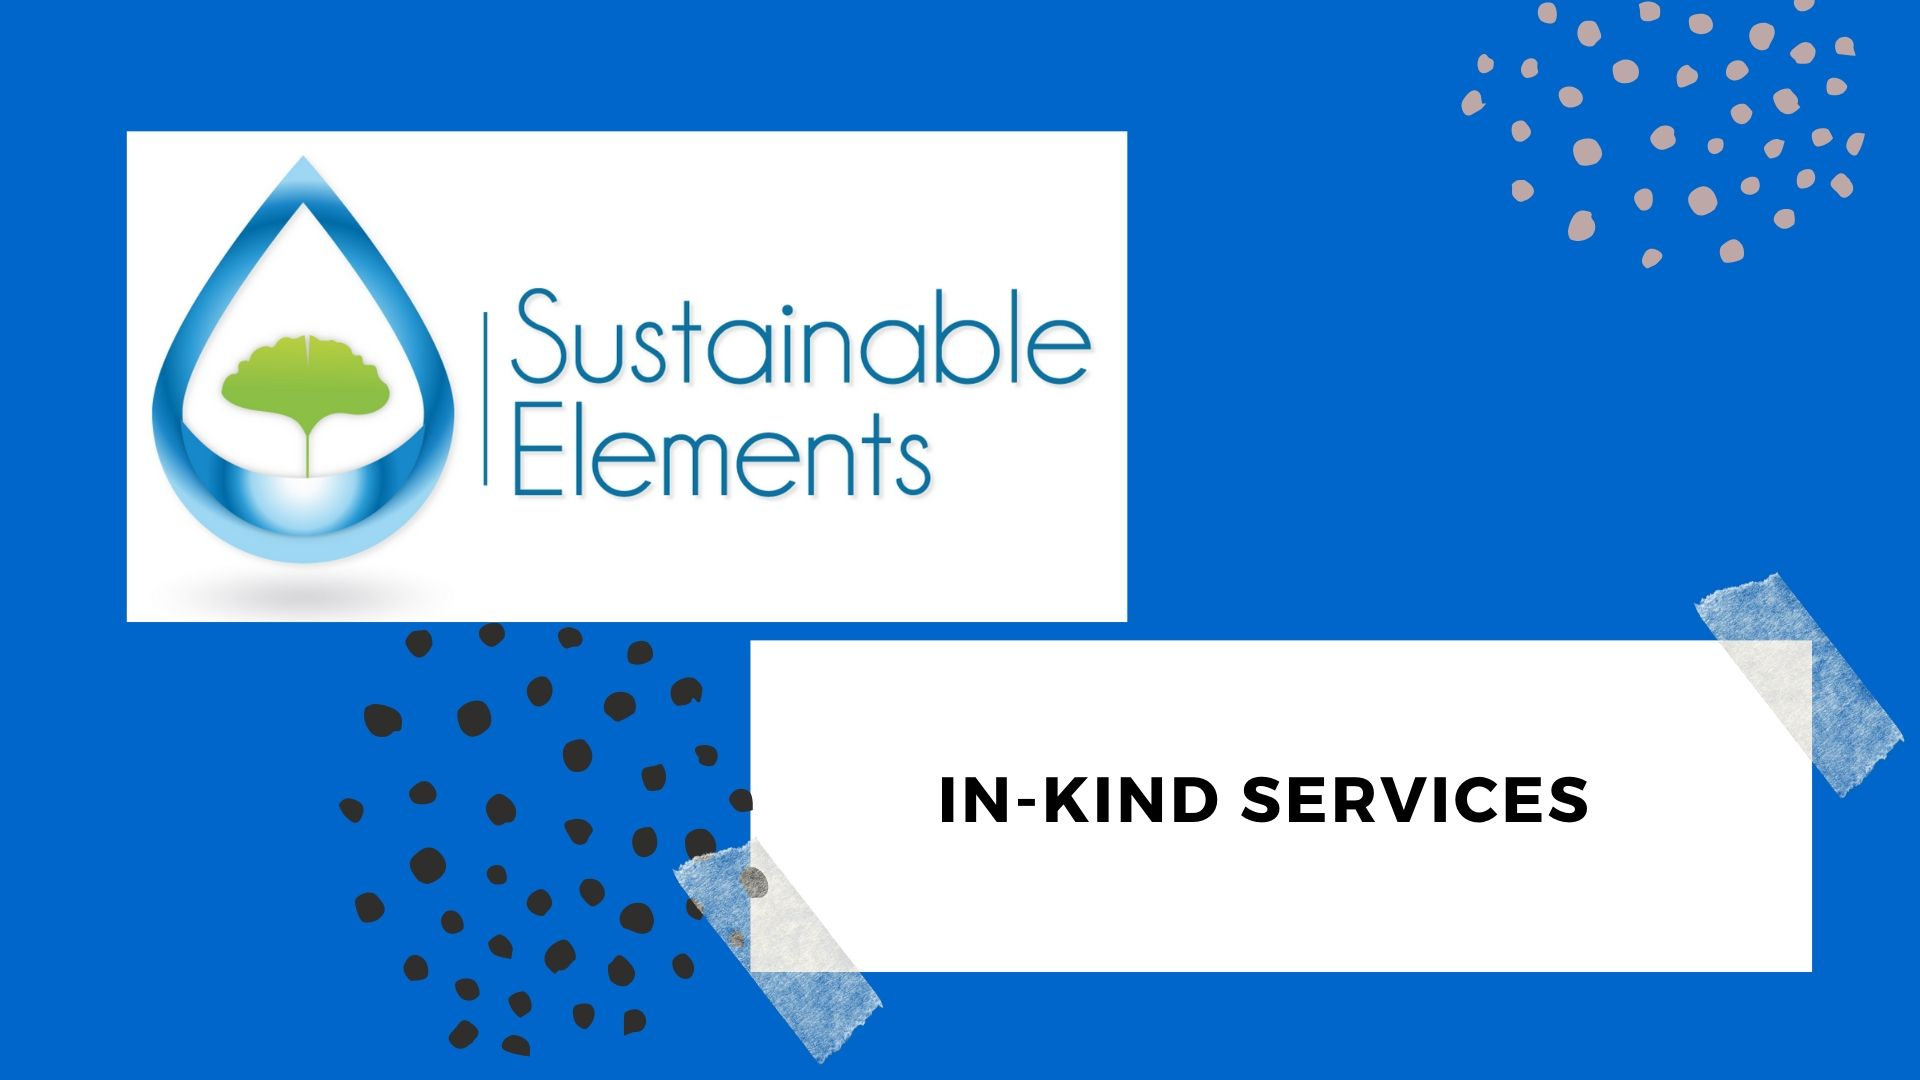 Sustainable Elements